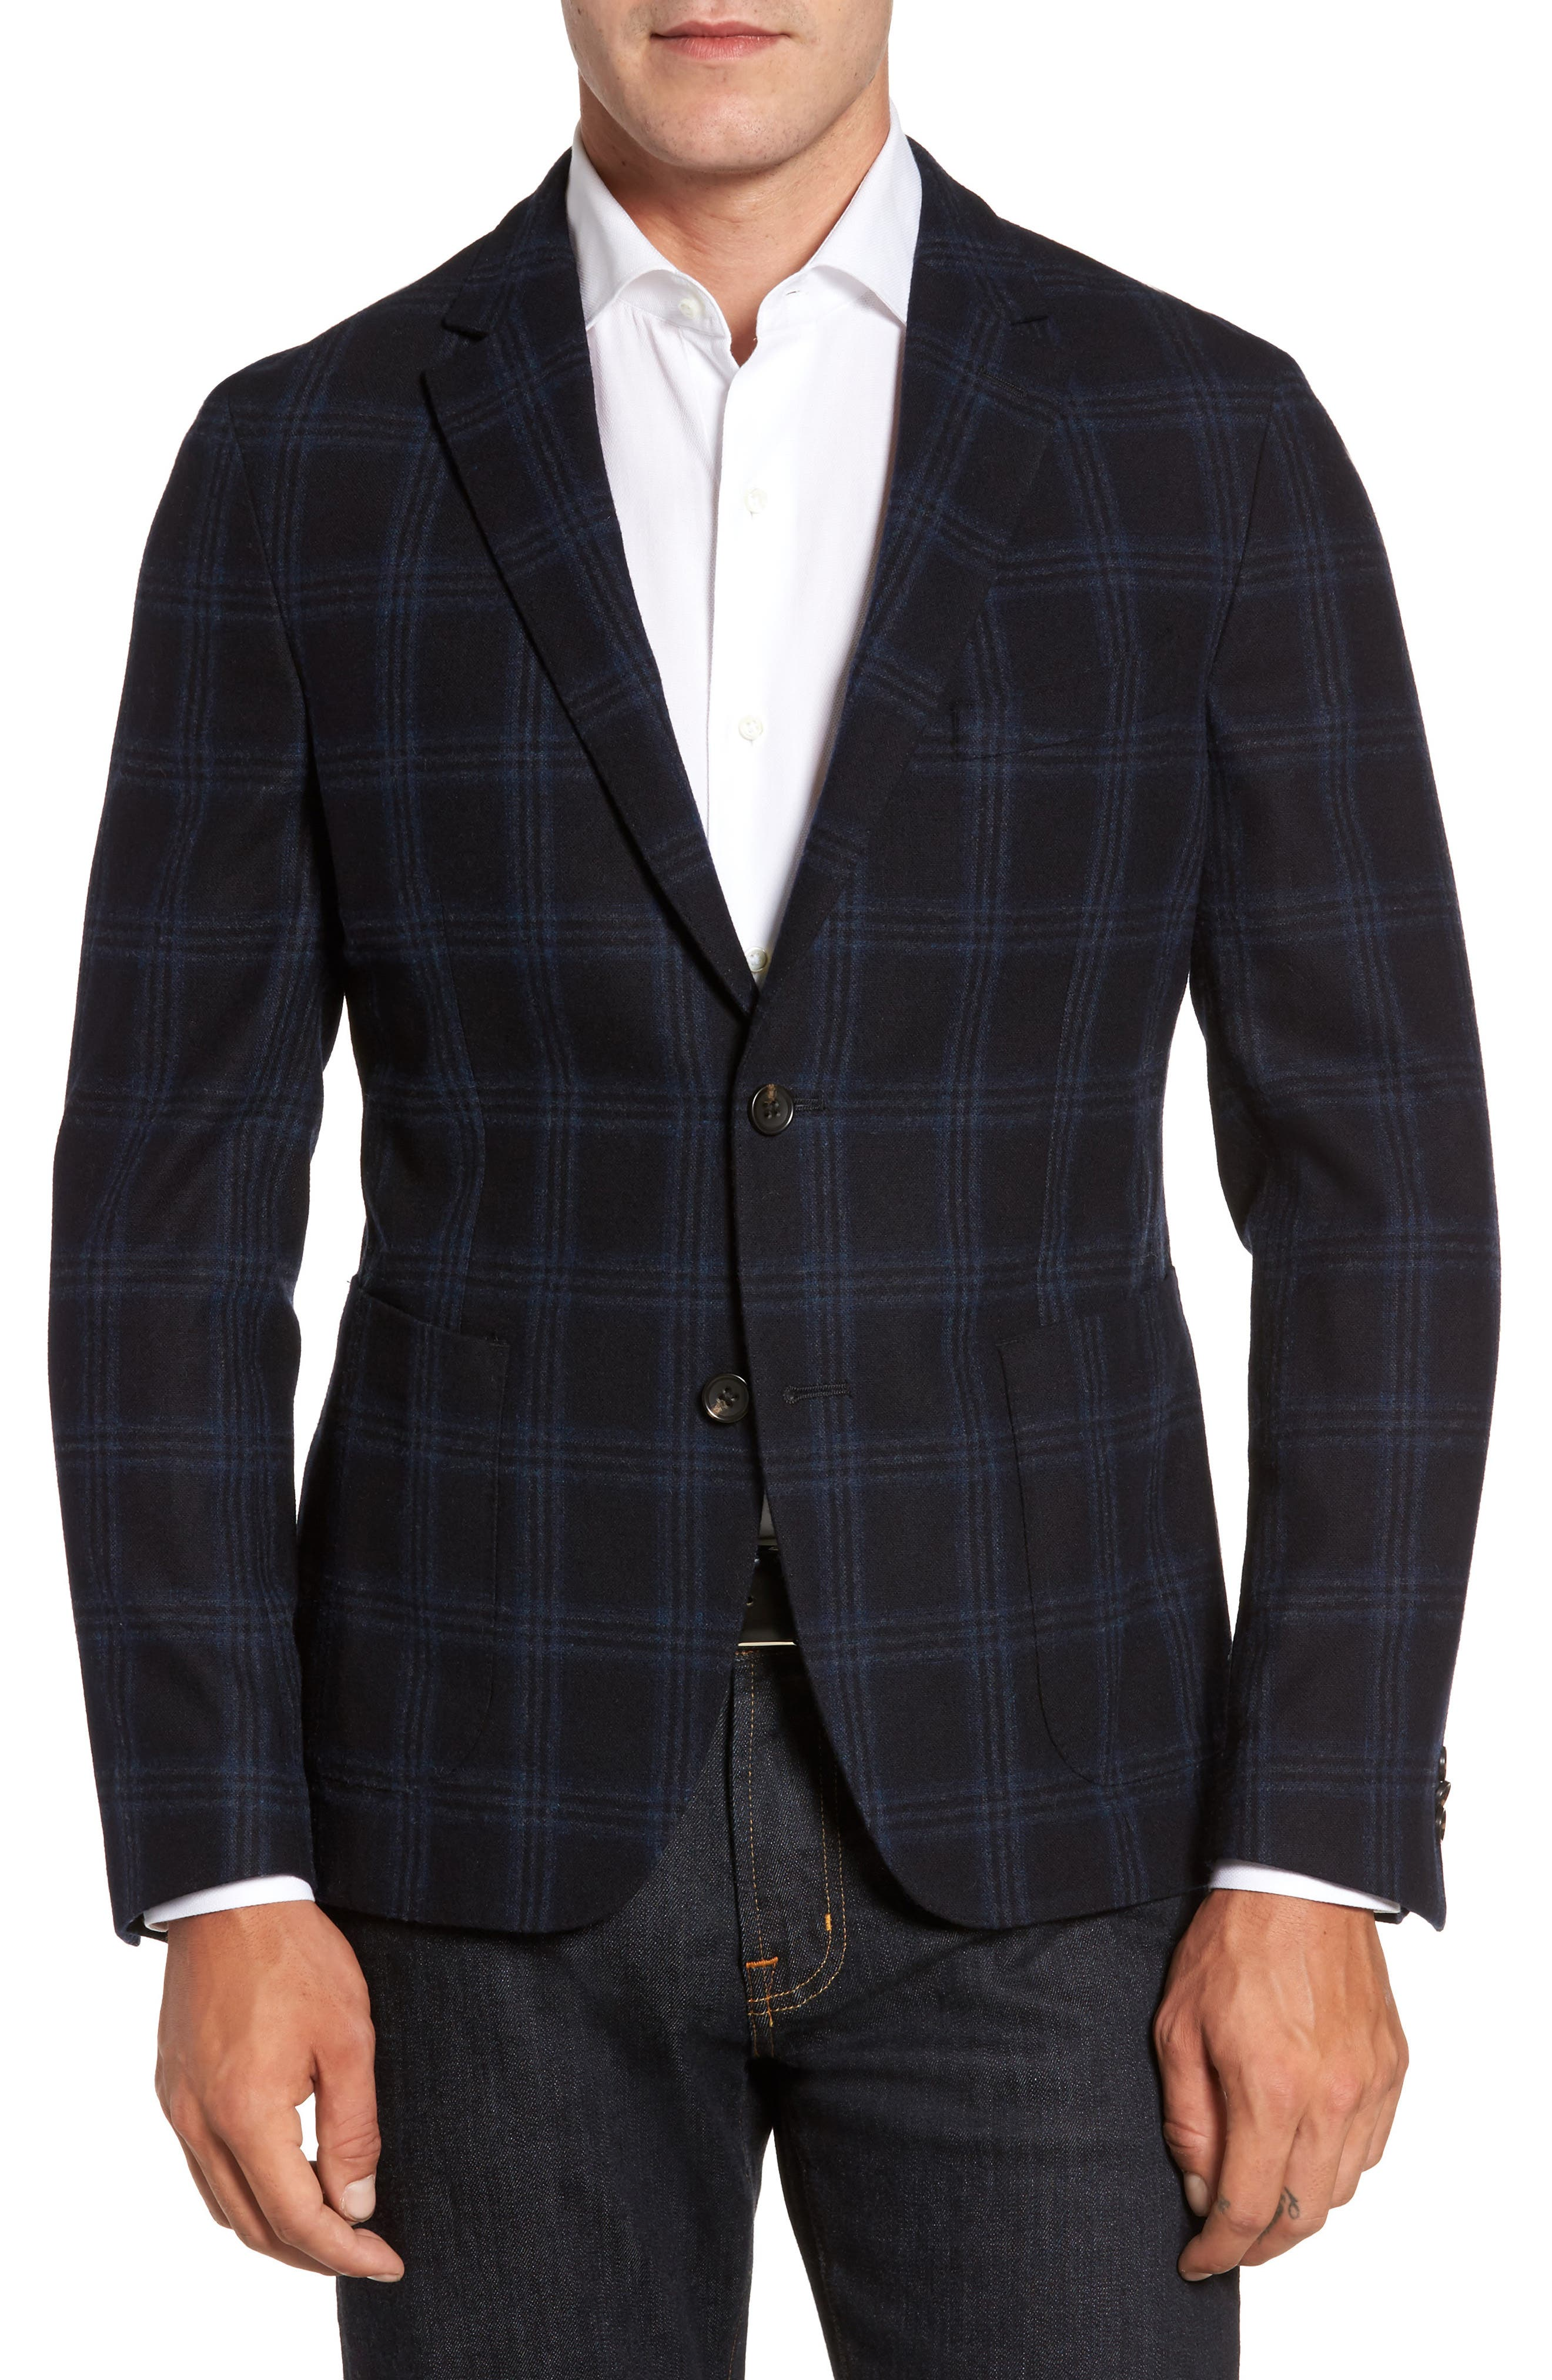 Main Image - FLYNT Classic Fit Windowpane Wool & Cashmere Jersey Sport Coat